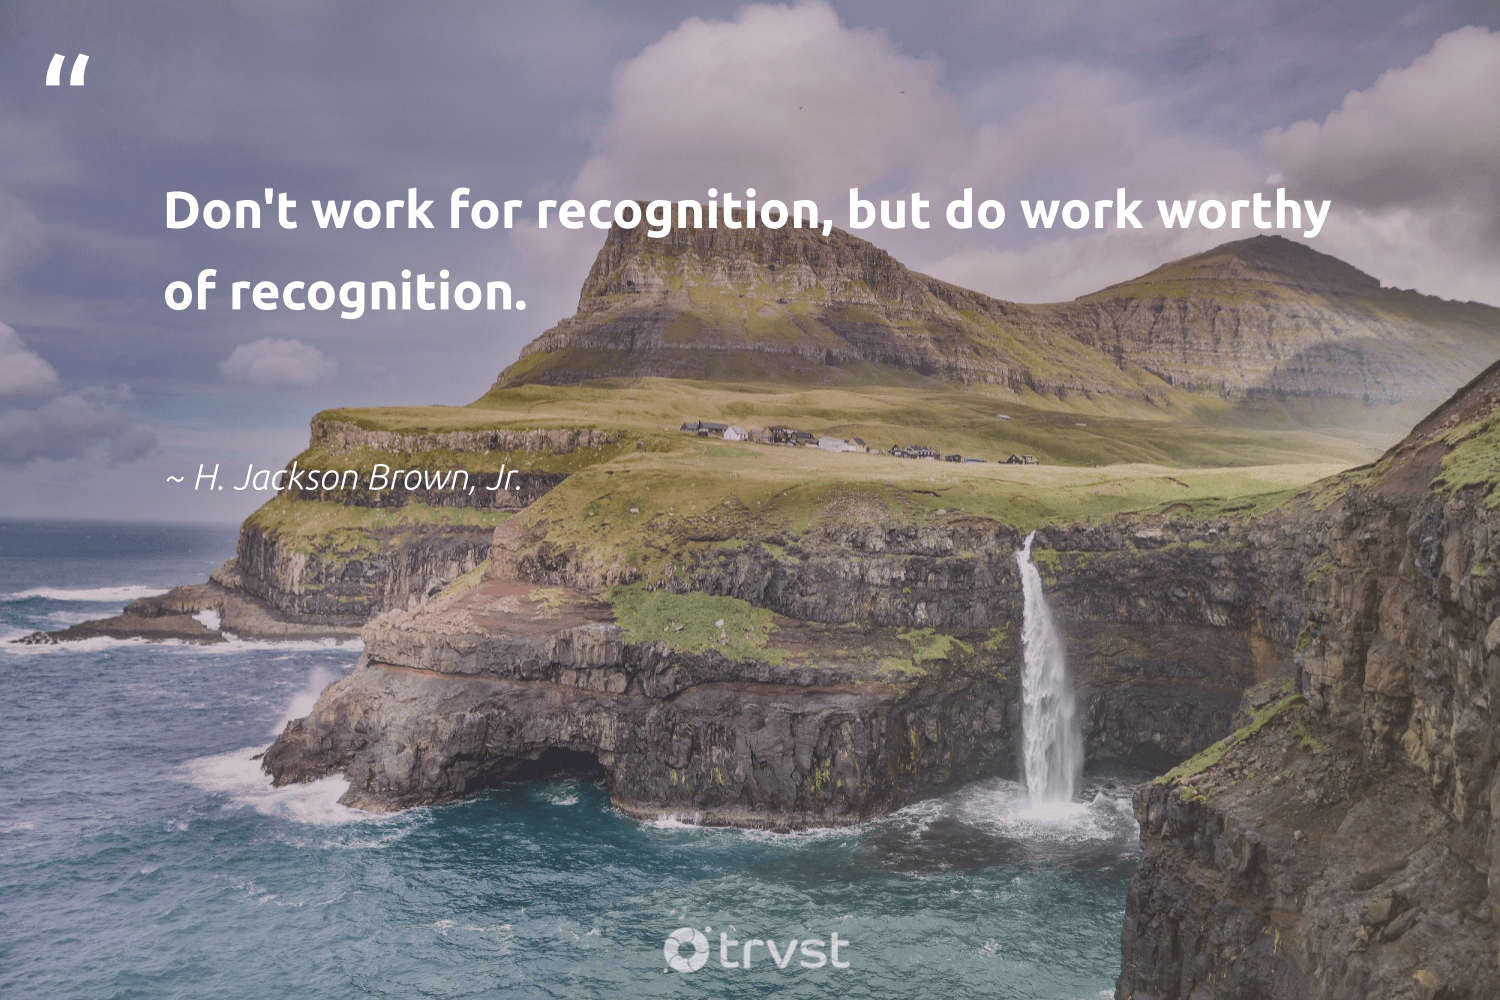 """""""Don't work for recognition, but do work worthy of recognition.""""  - H. Jackson Brown, Jr. #trvst #quotes #softskills #gogreen #begreat #dosomething #nevergiveup #socialchange #futureofwork #socialimpact #ecoconscious #dotherightthing"""